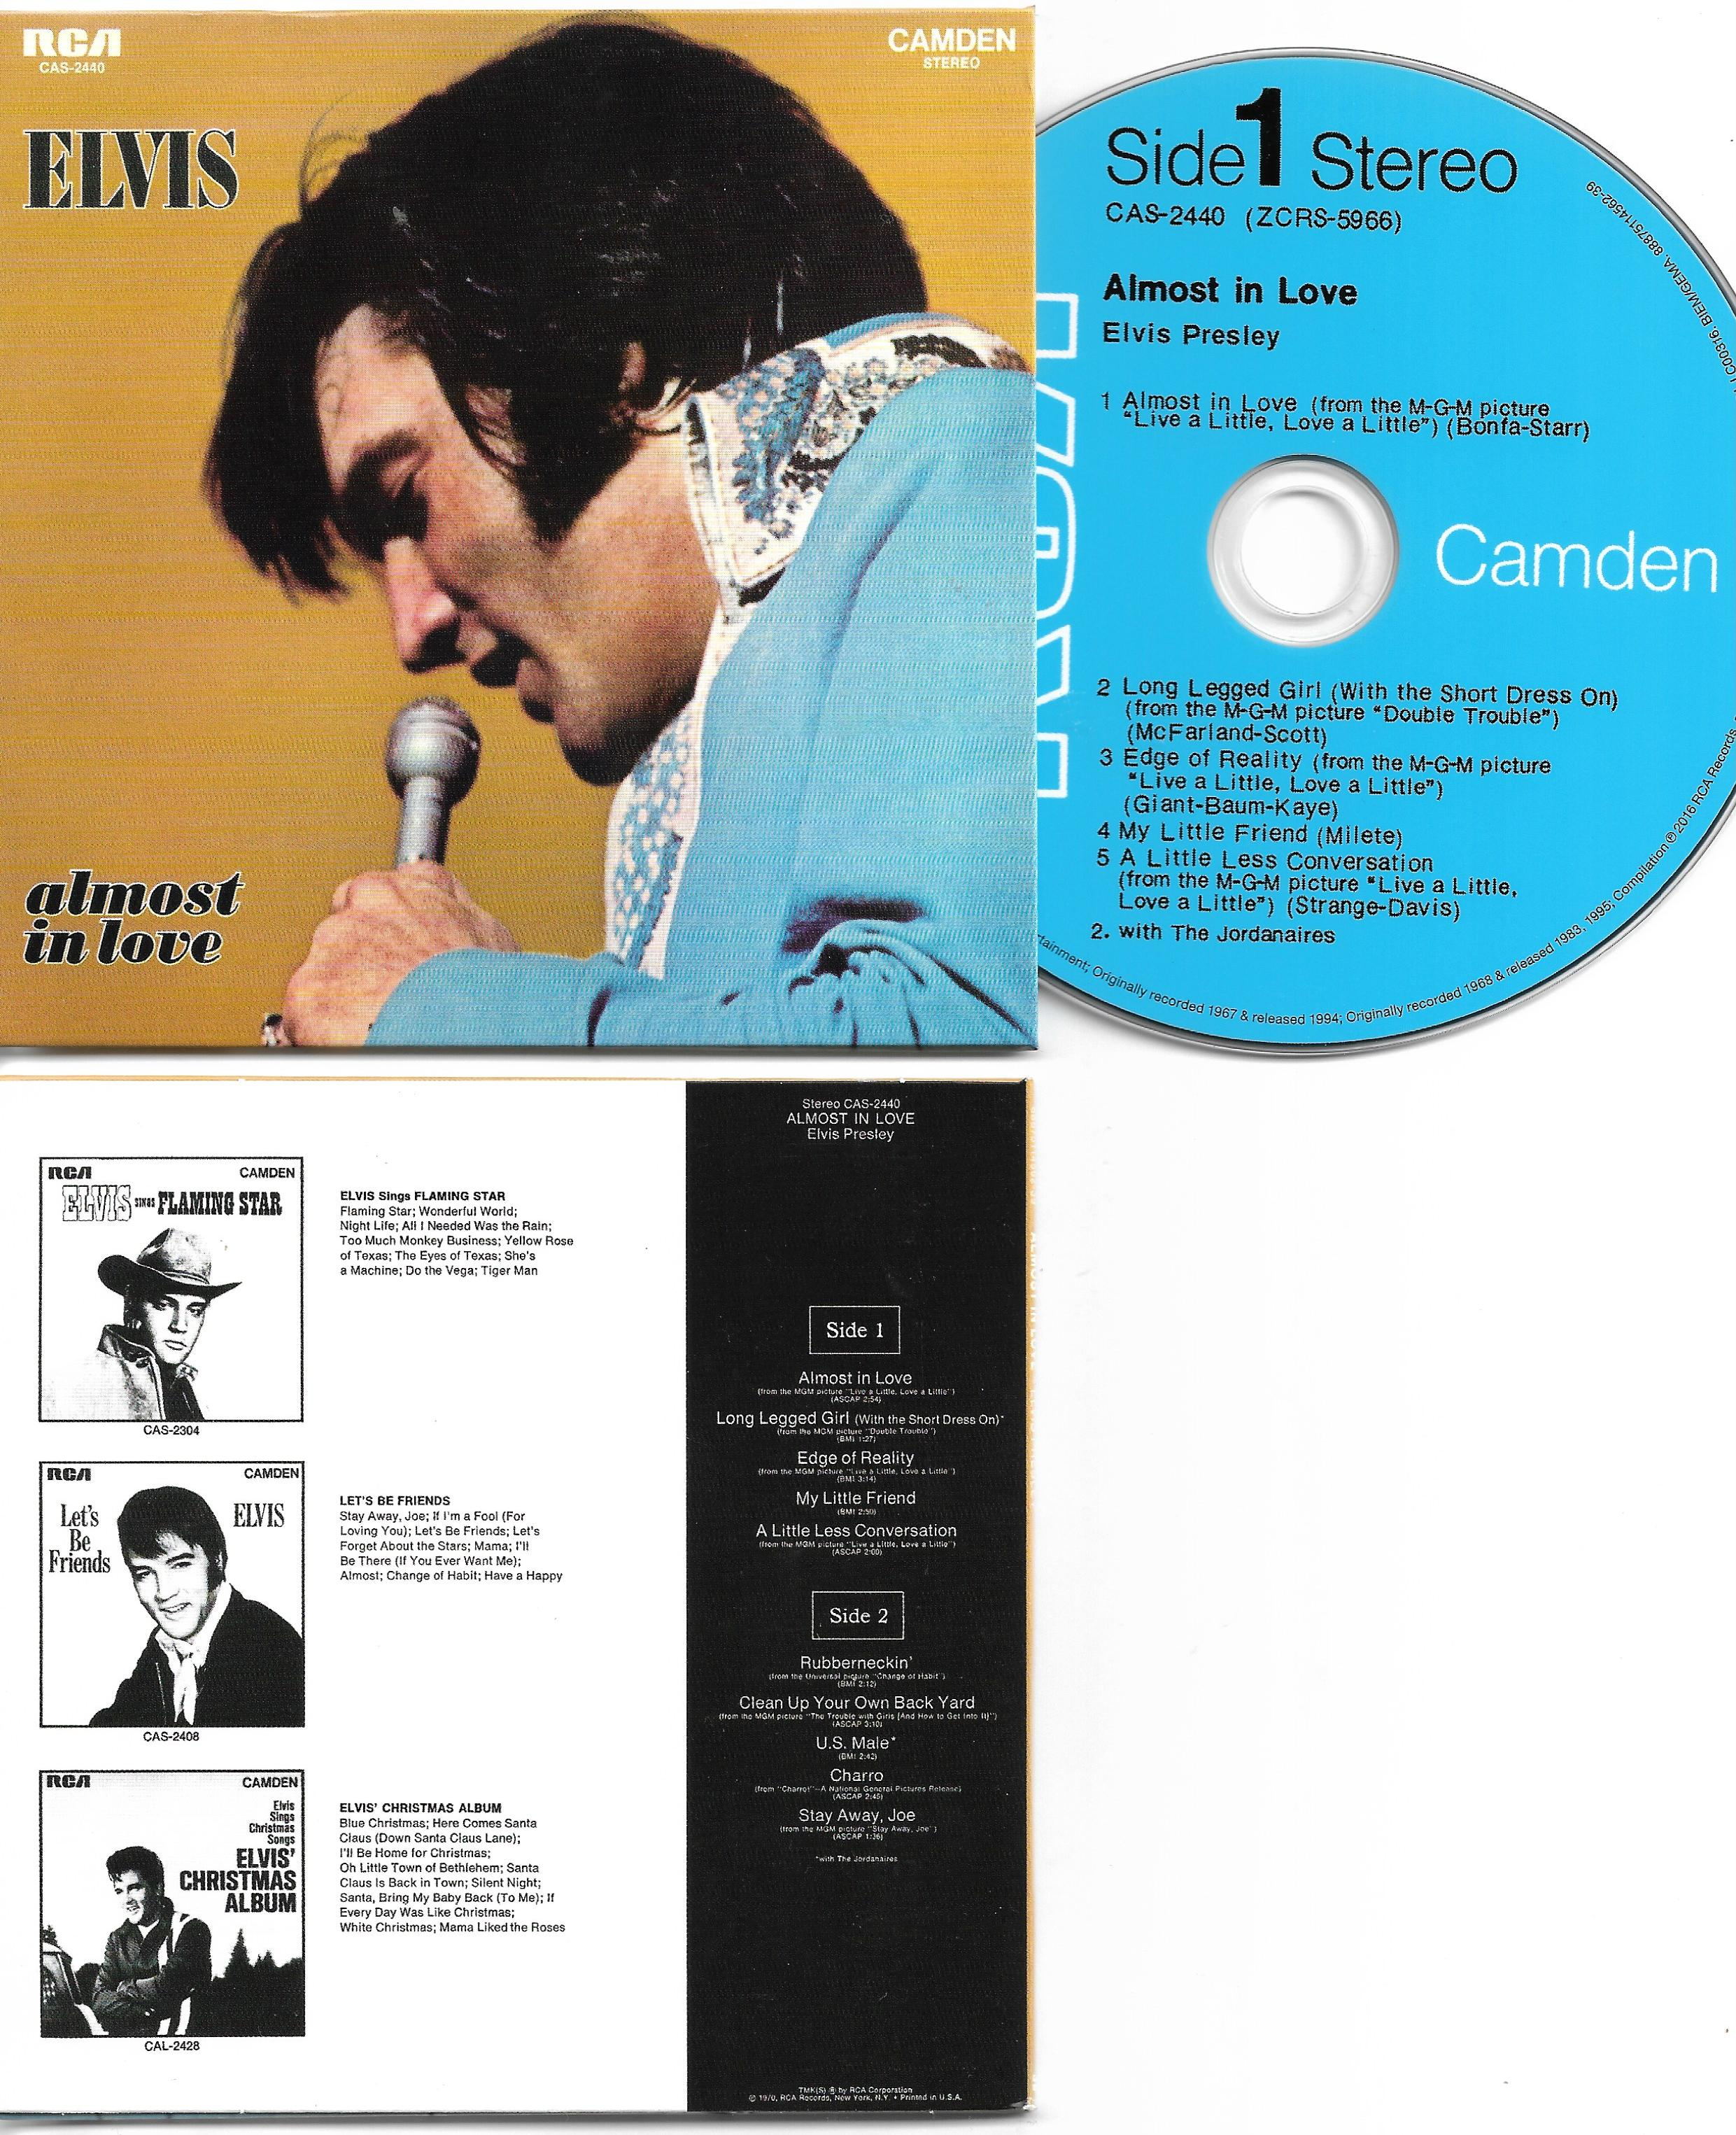 almost in love 1970 mini lp replica 13 track card sleeve by